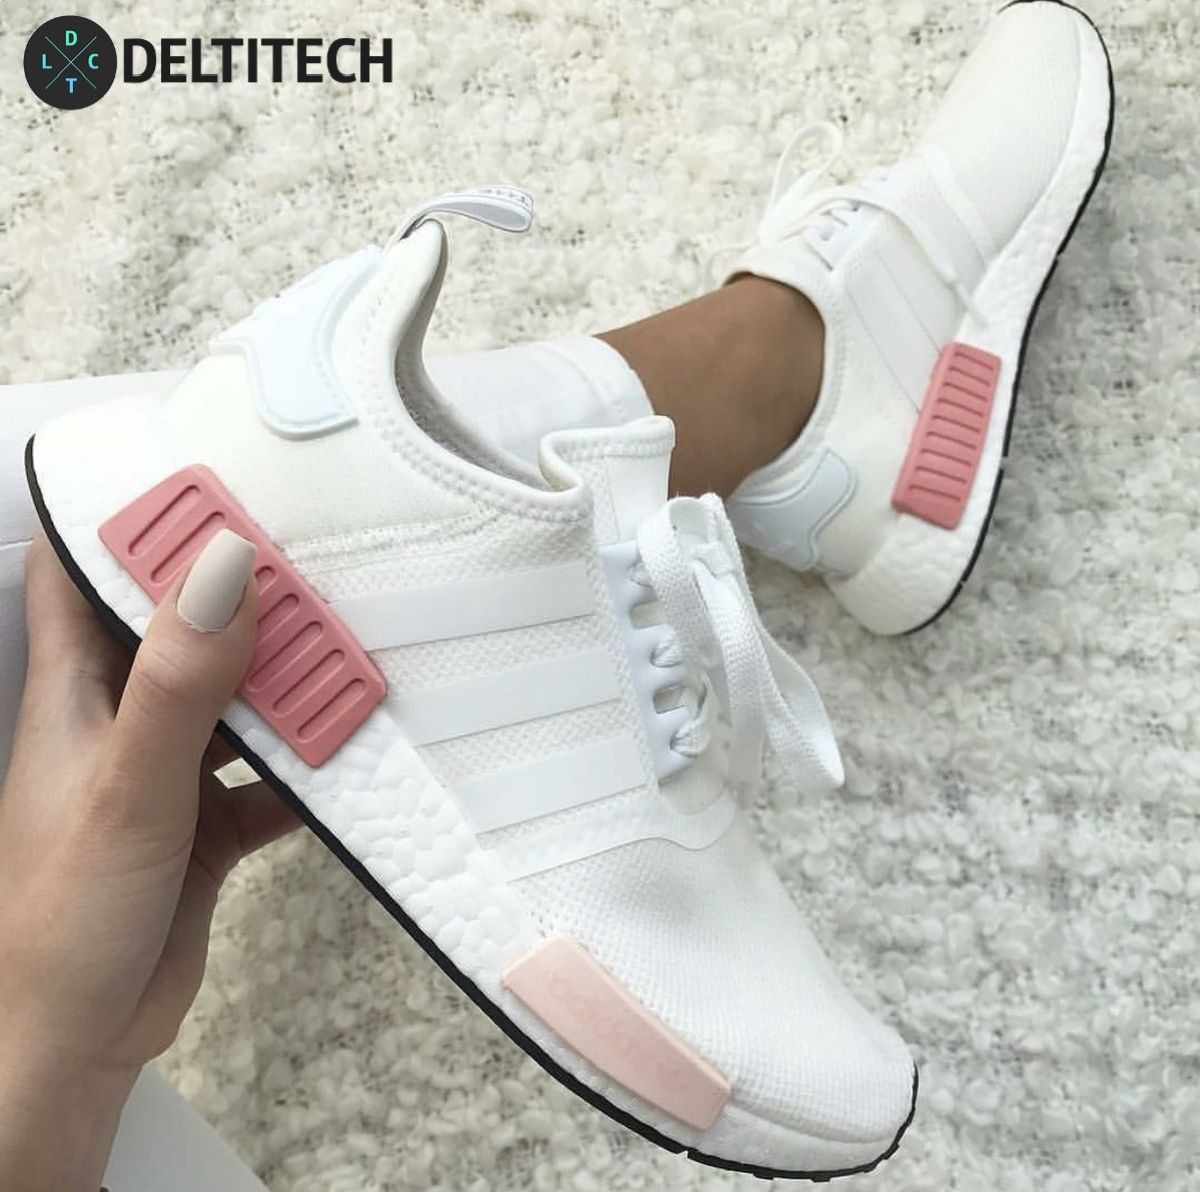 80689bf98 Adidas NMD R1 - Pink White Perfect For Your Girls Go See The Full  Collection On Our Site   -  DeltitechBrands.com  -  adidas  nmd  nmds  nmdr1